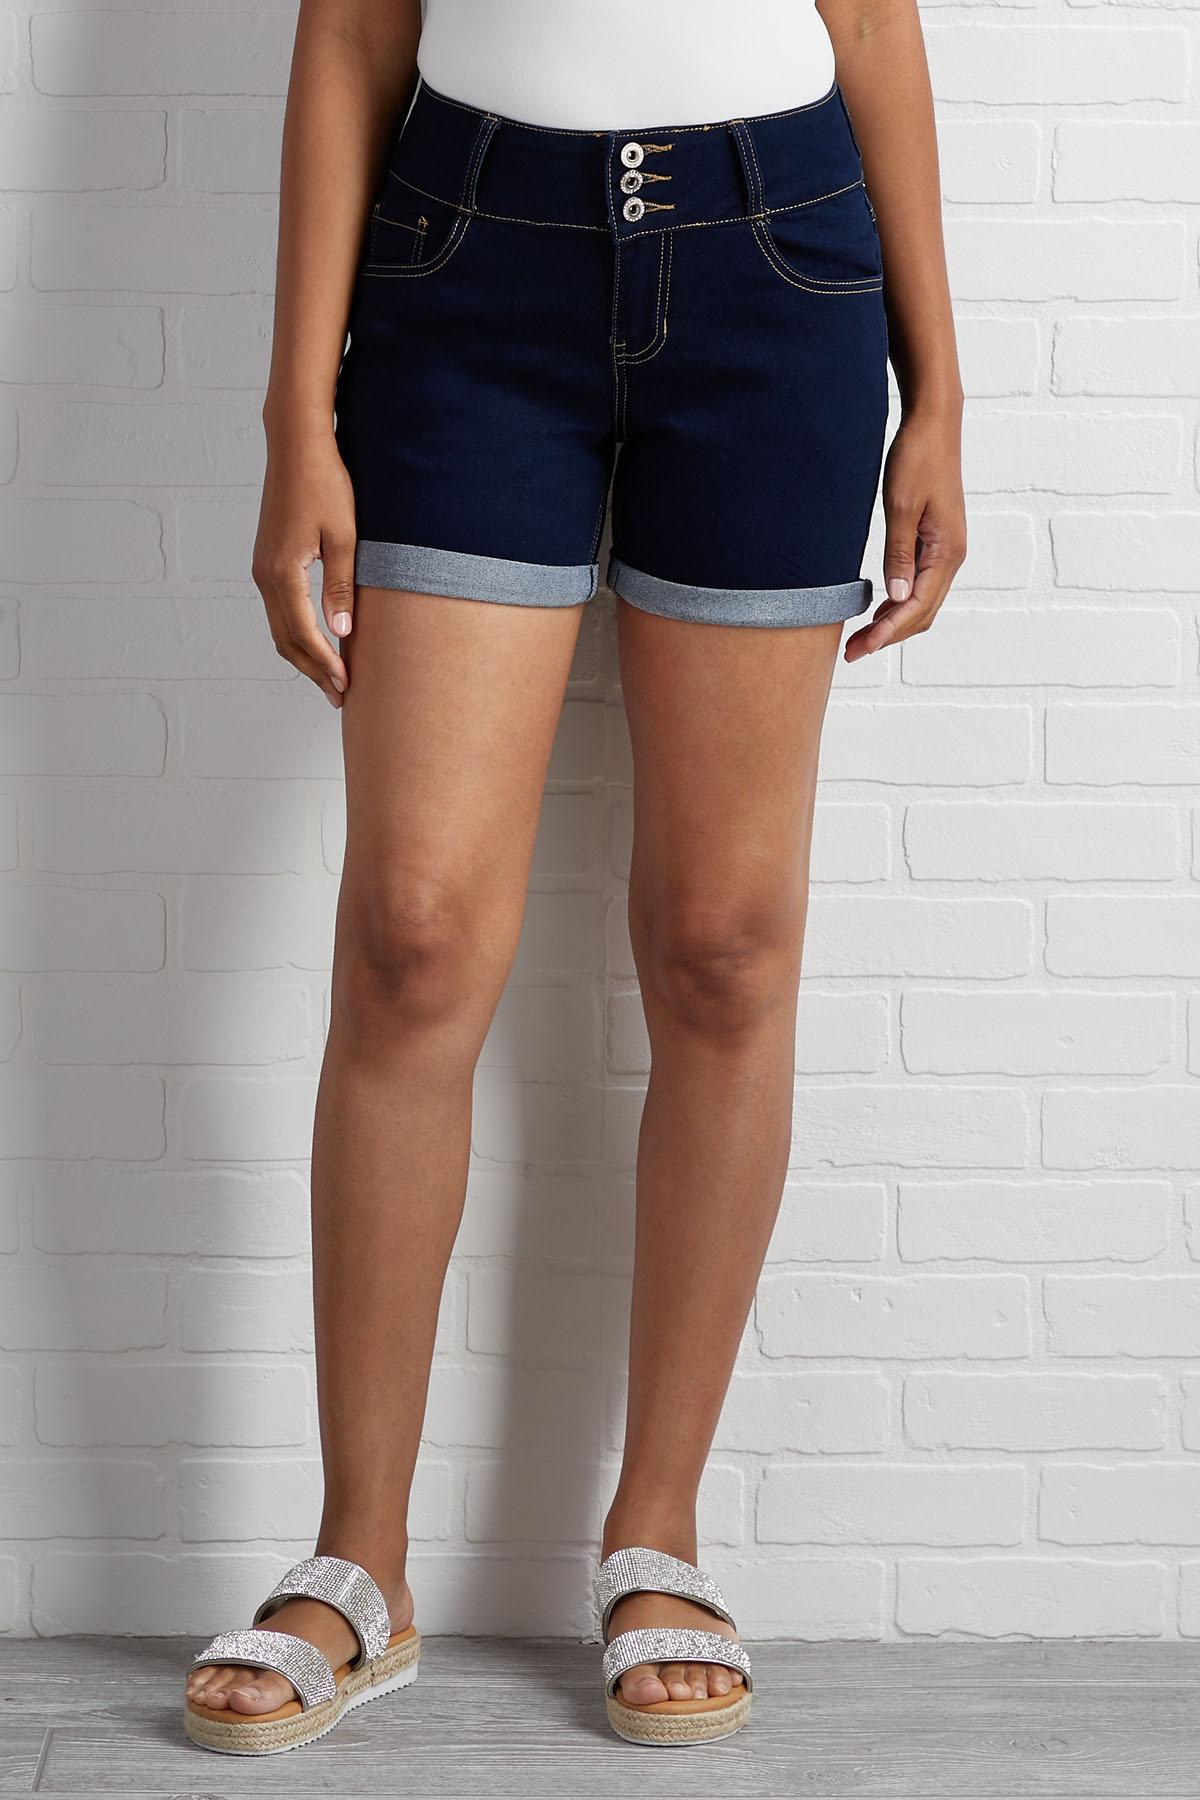 Meet For Drinks Shorts